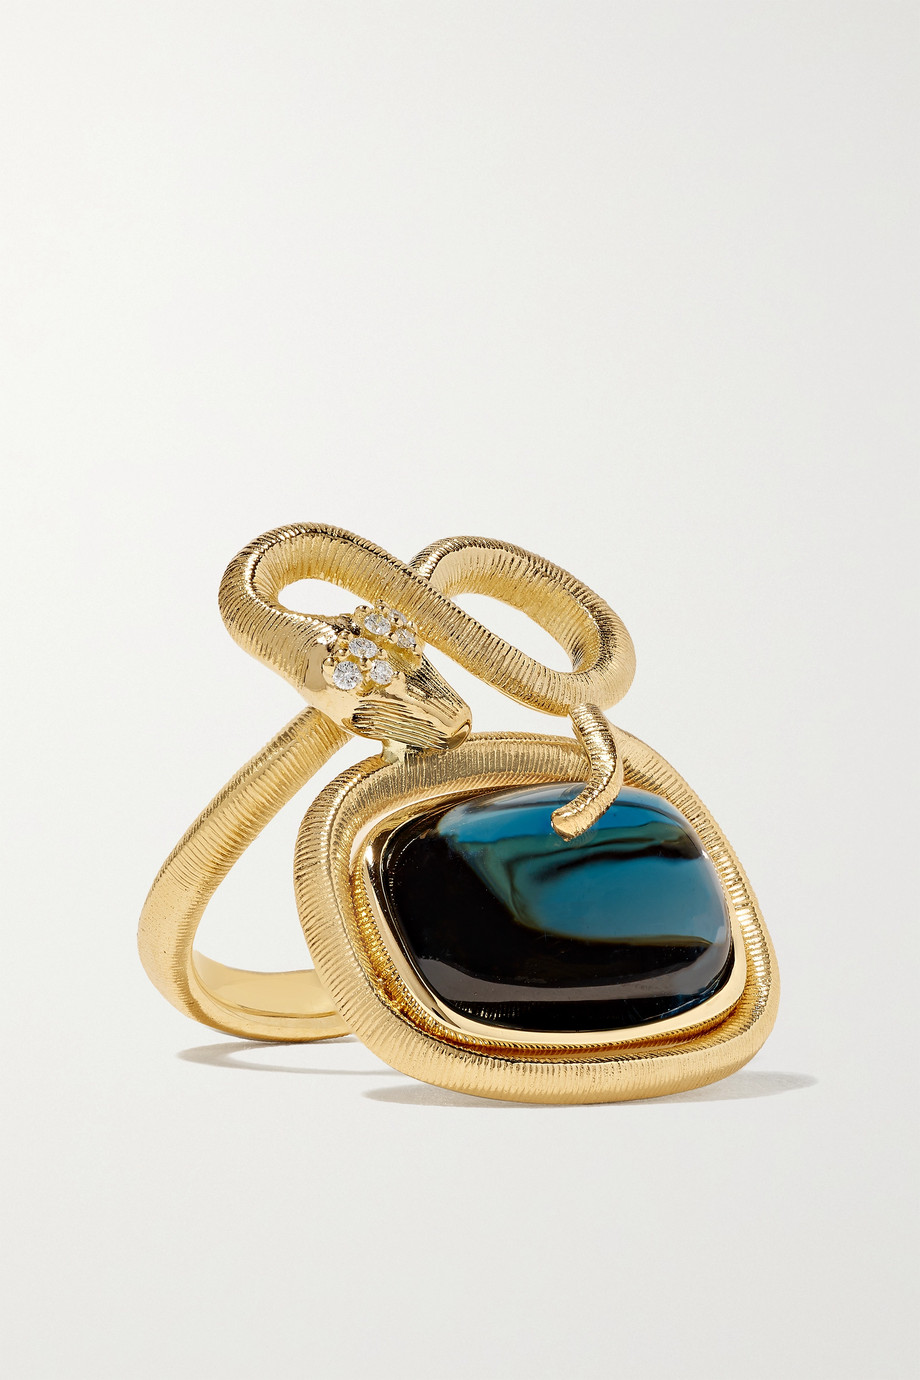 OLE LYNGGAARD COPENHAGEN Snake 18-karat gold, topaz and diamond ring